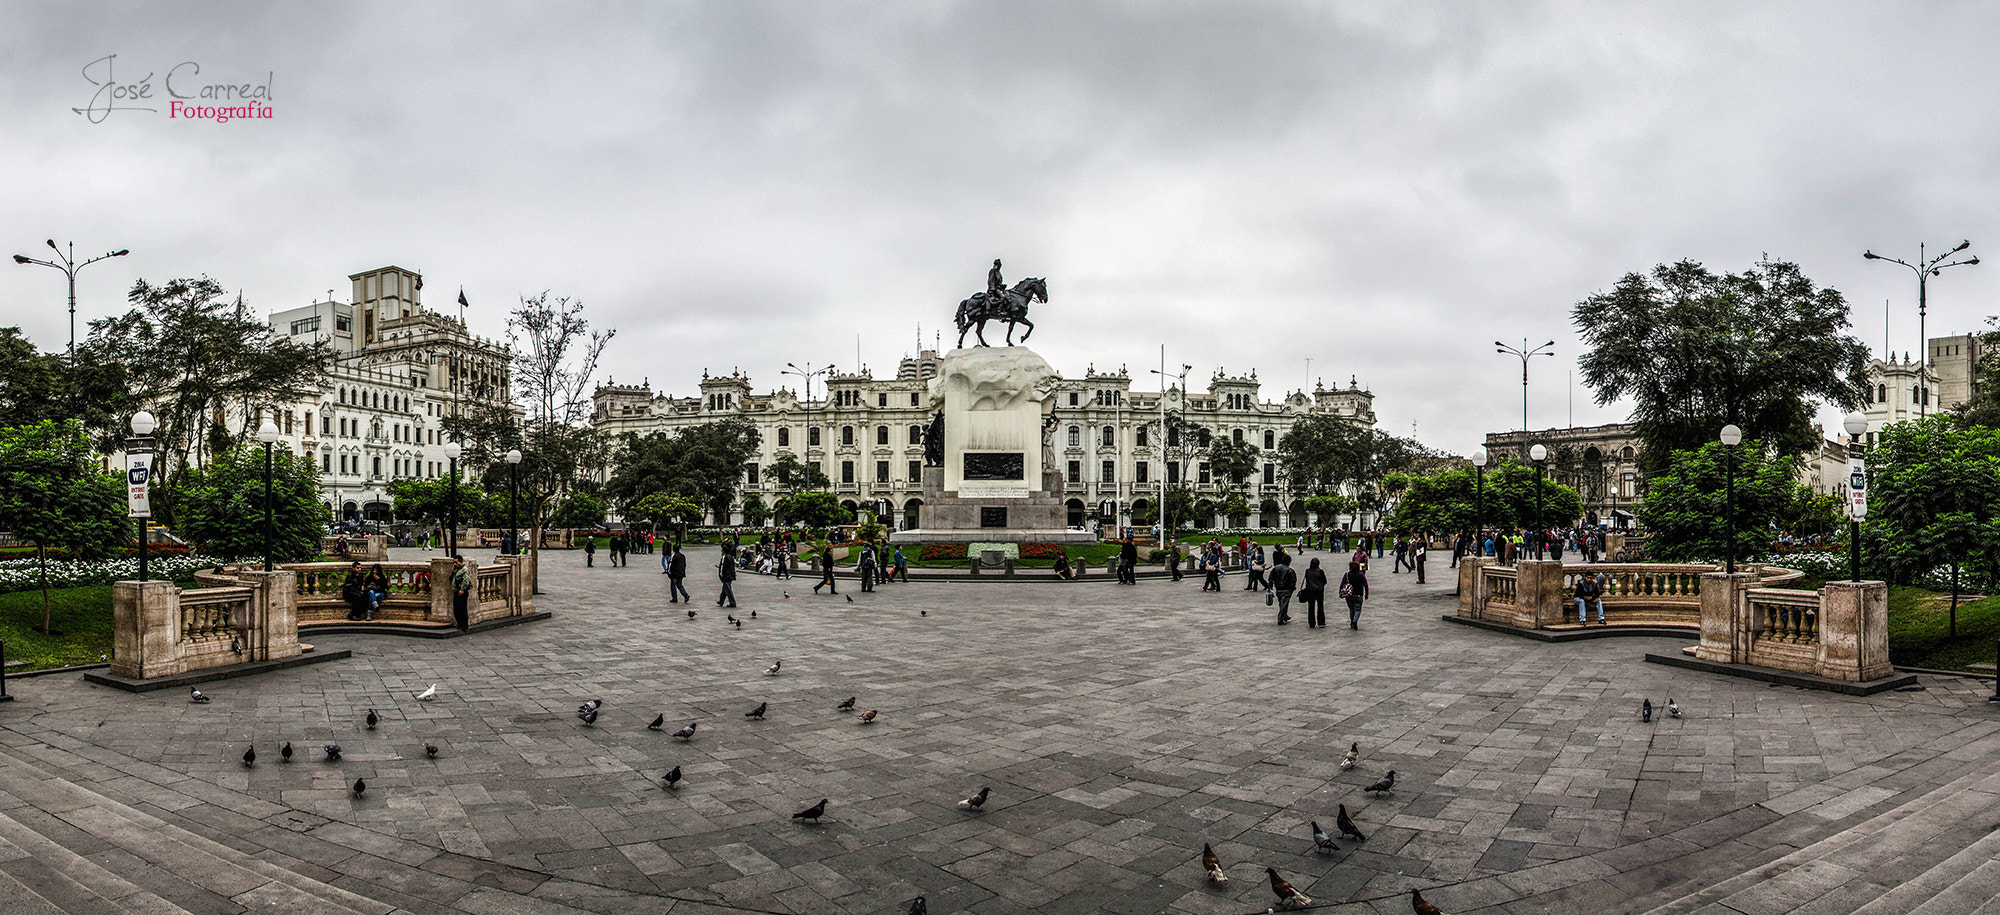 Photograph Panoramica: Plaza San Martin by Jose Carreal on 500px